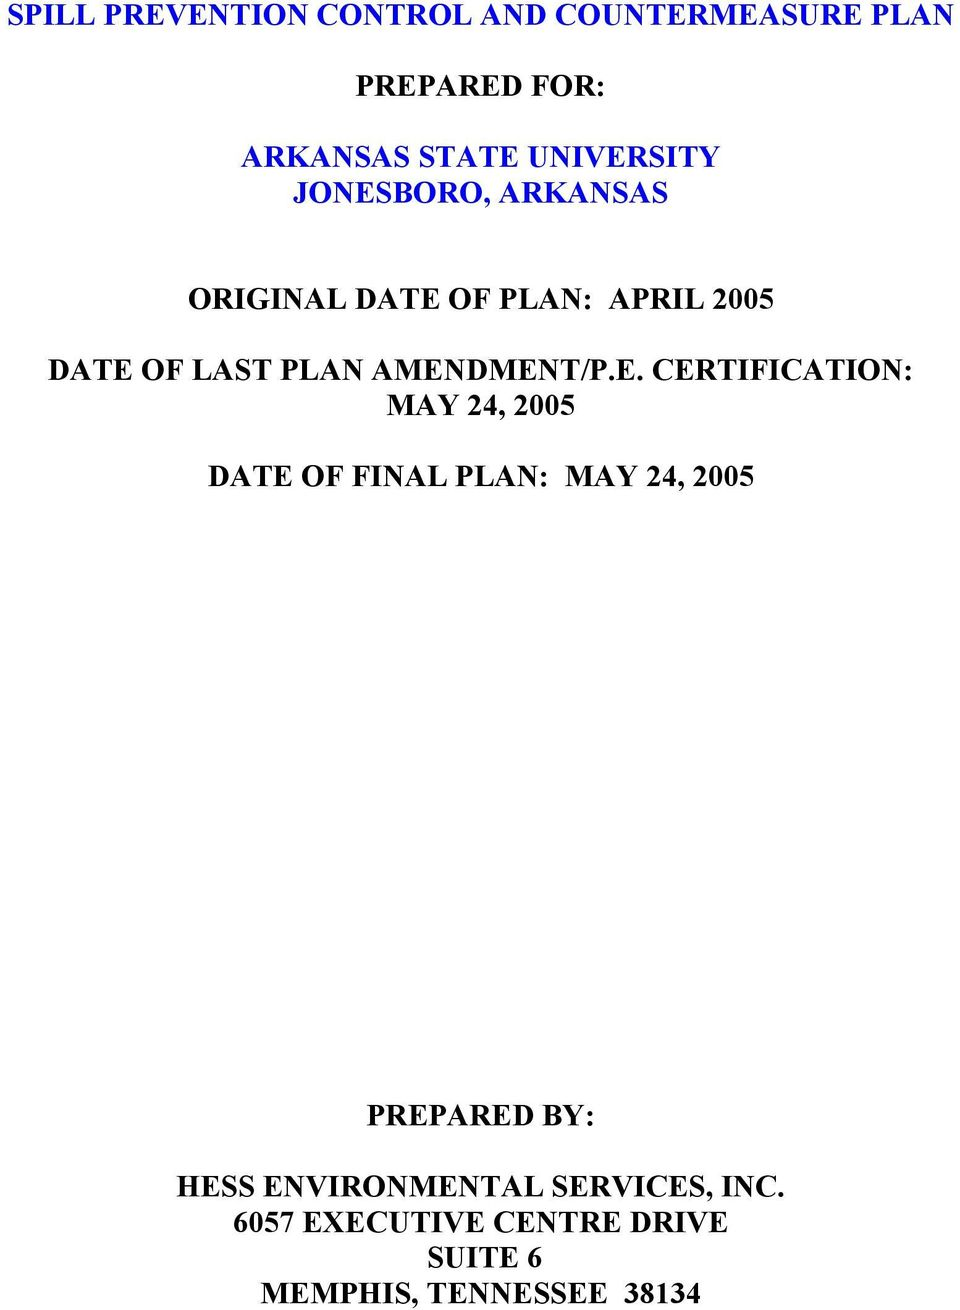 AMENDMENT/P.E. CERTIFICATION: MAY 24, 2005 DATE OF FINAL PLAN: MAY 24, 2005 PREPARED